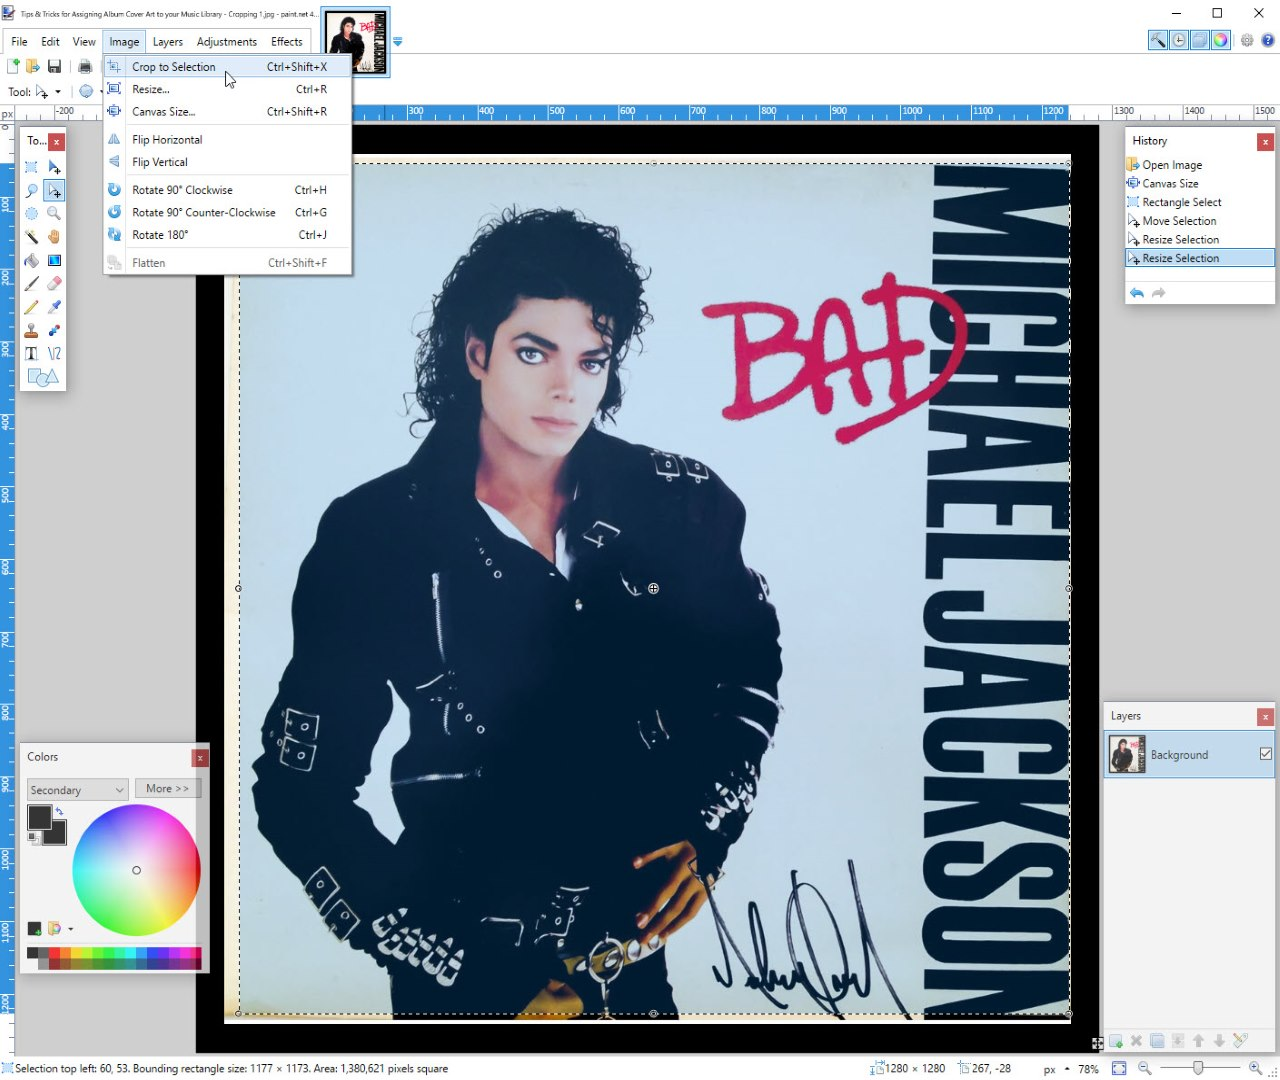 Tips & Tricks for Assigning Album Cover Art to your Music